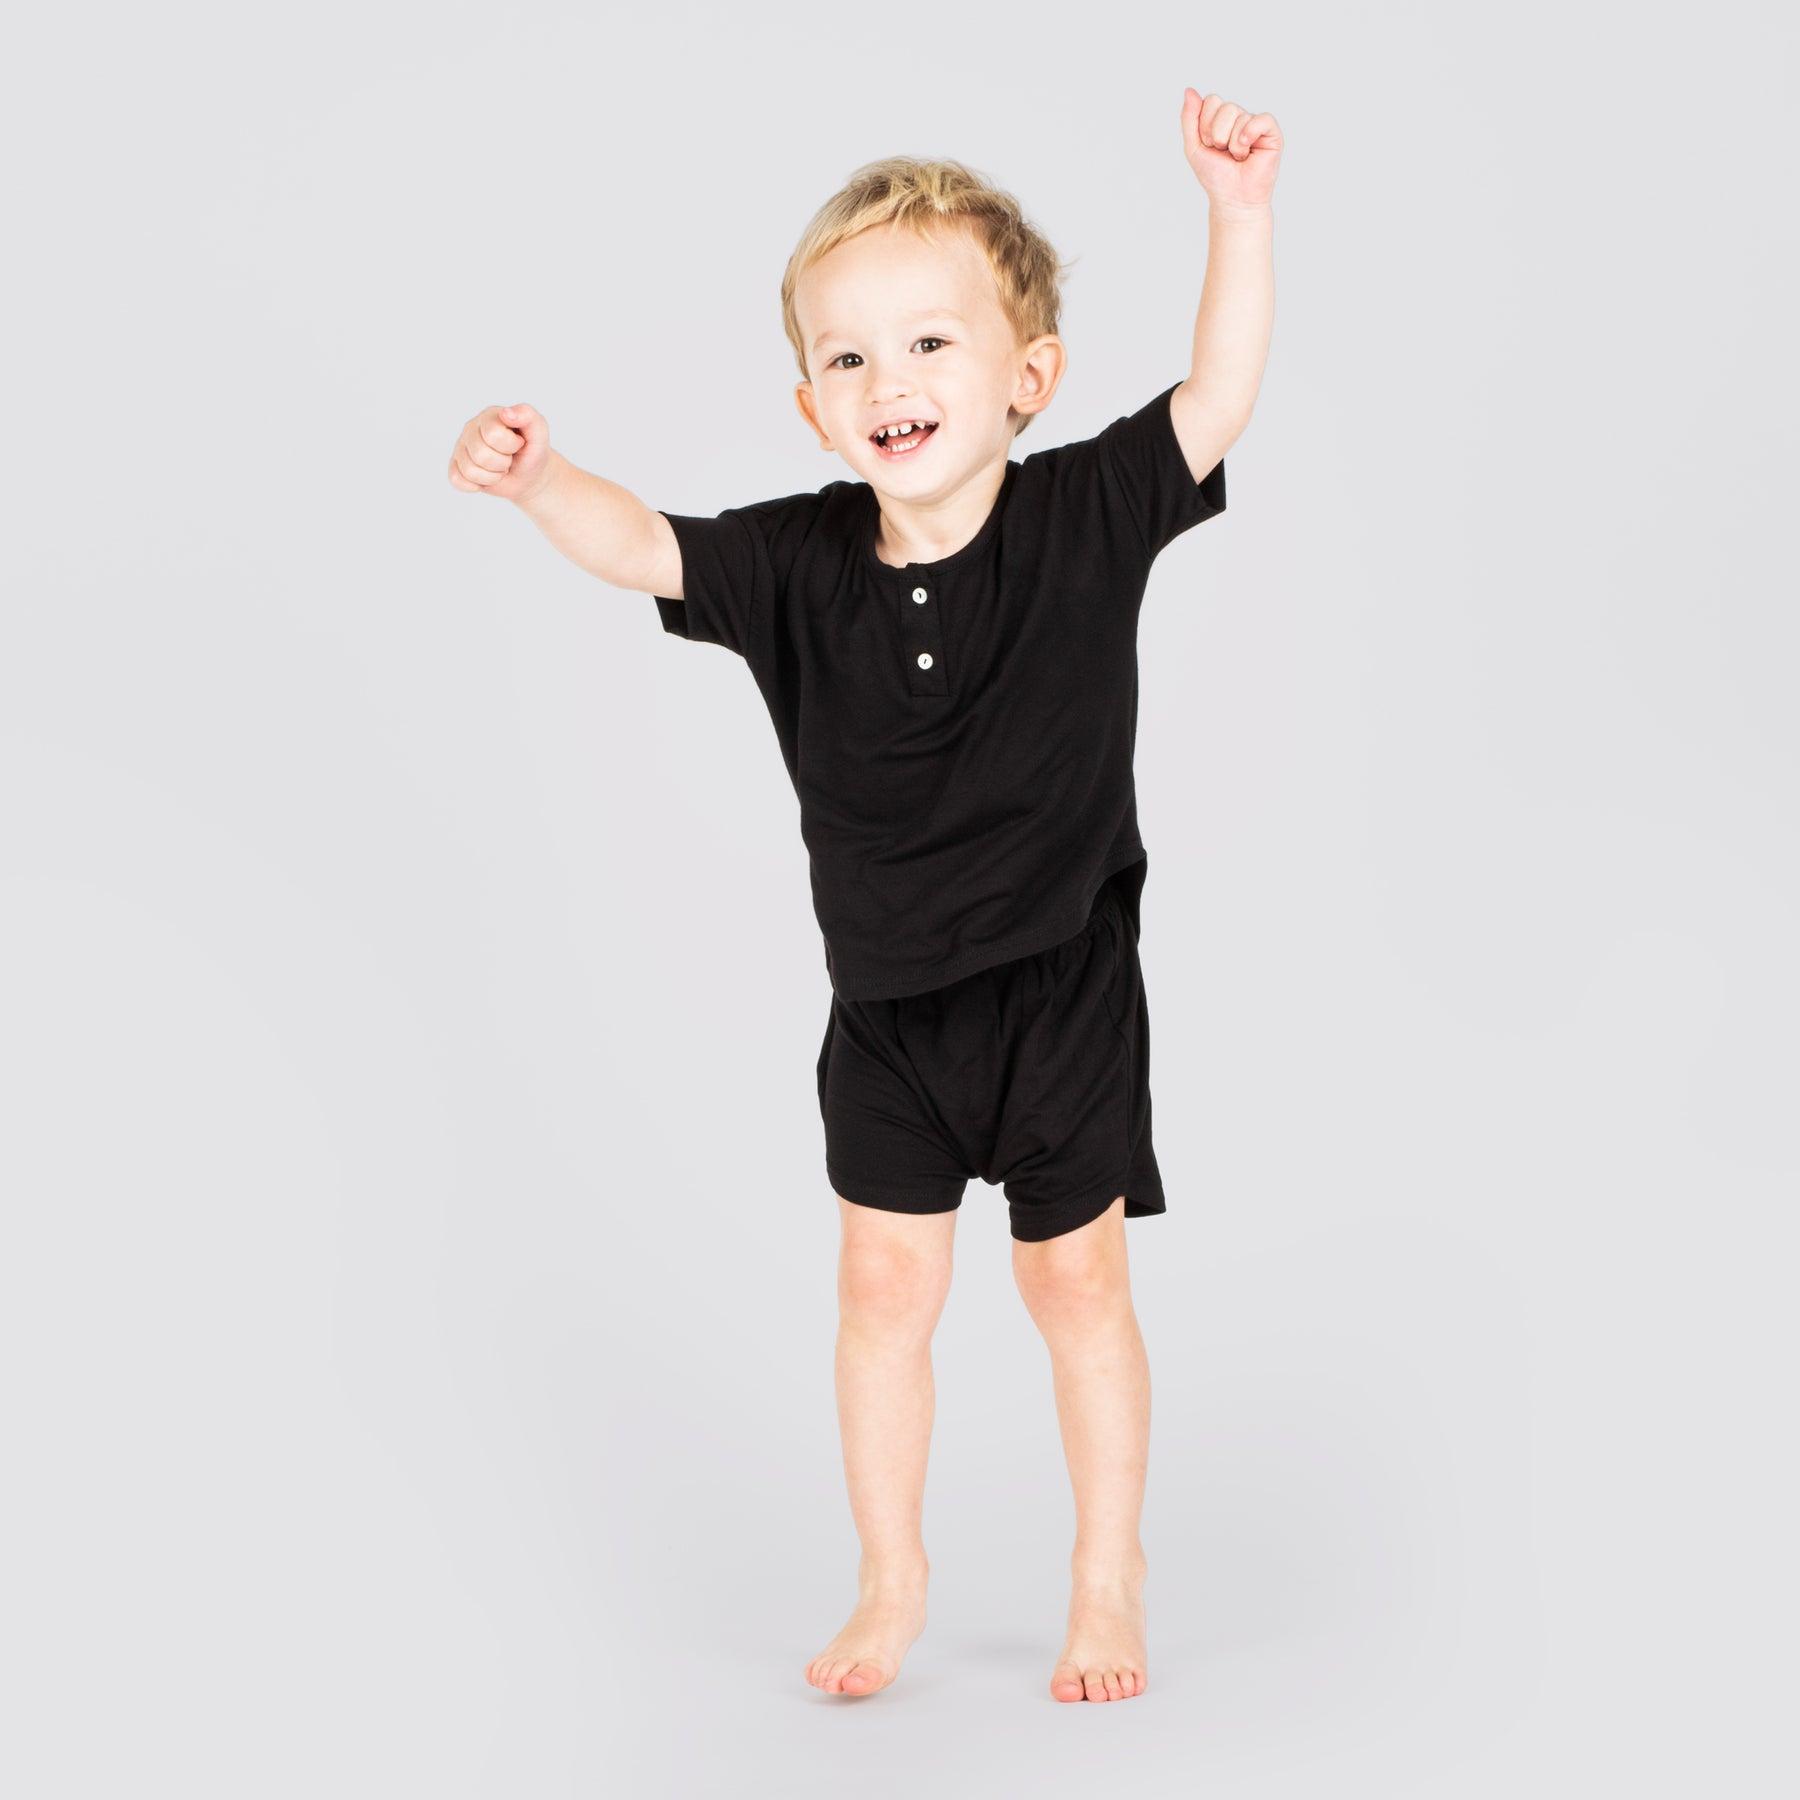 Premium bamboo clothes. Mommy and me clothes. mother and daughter matching dress. The ultra comfortable shirt and shorts set is for every free spirited kid to help jump higher and dance longer.